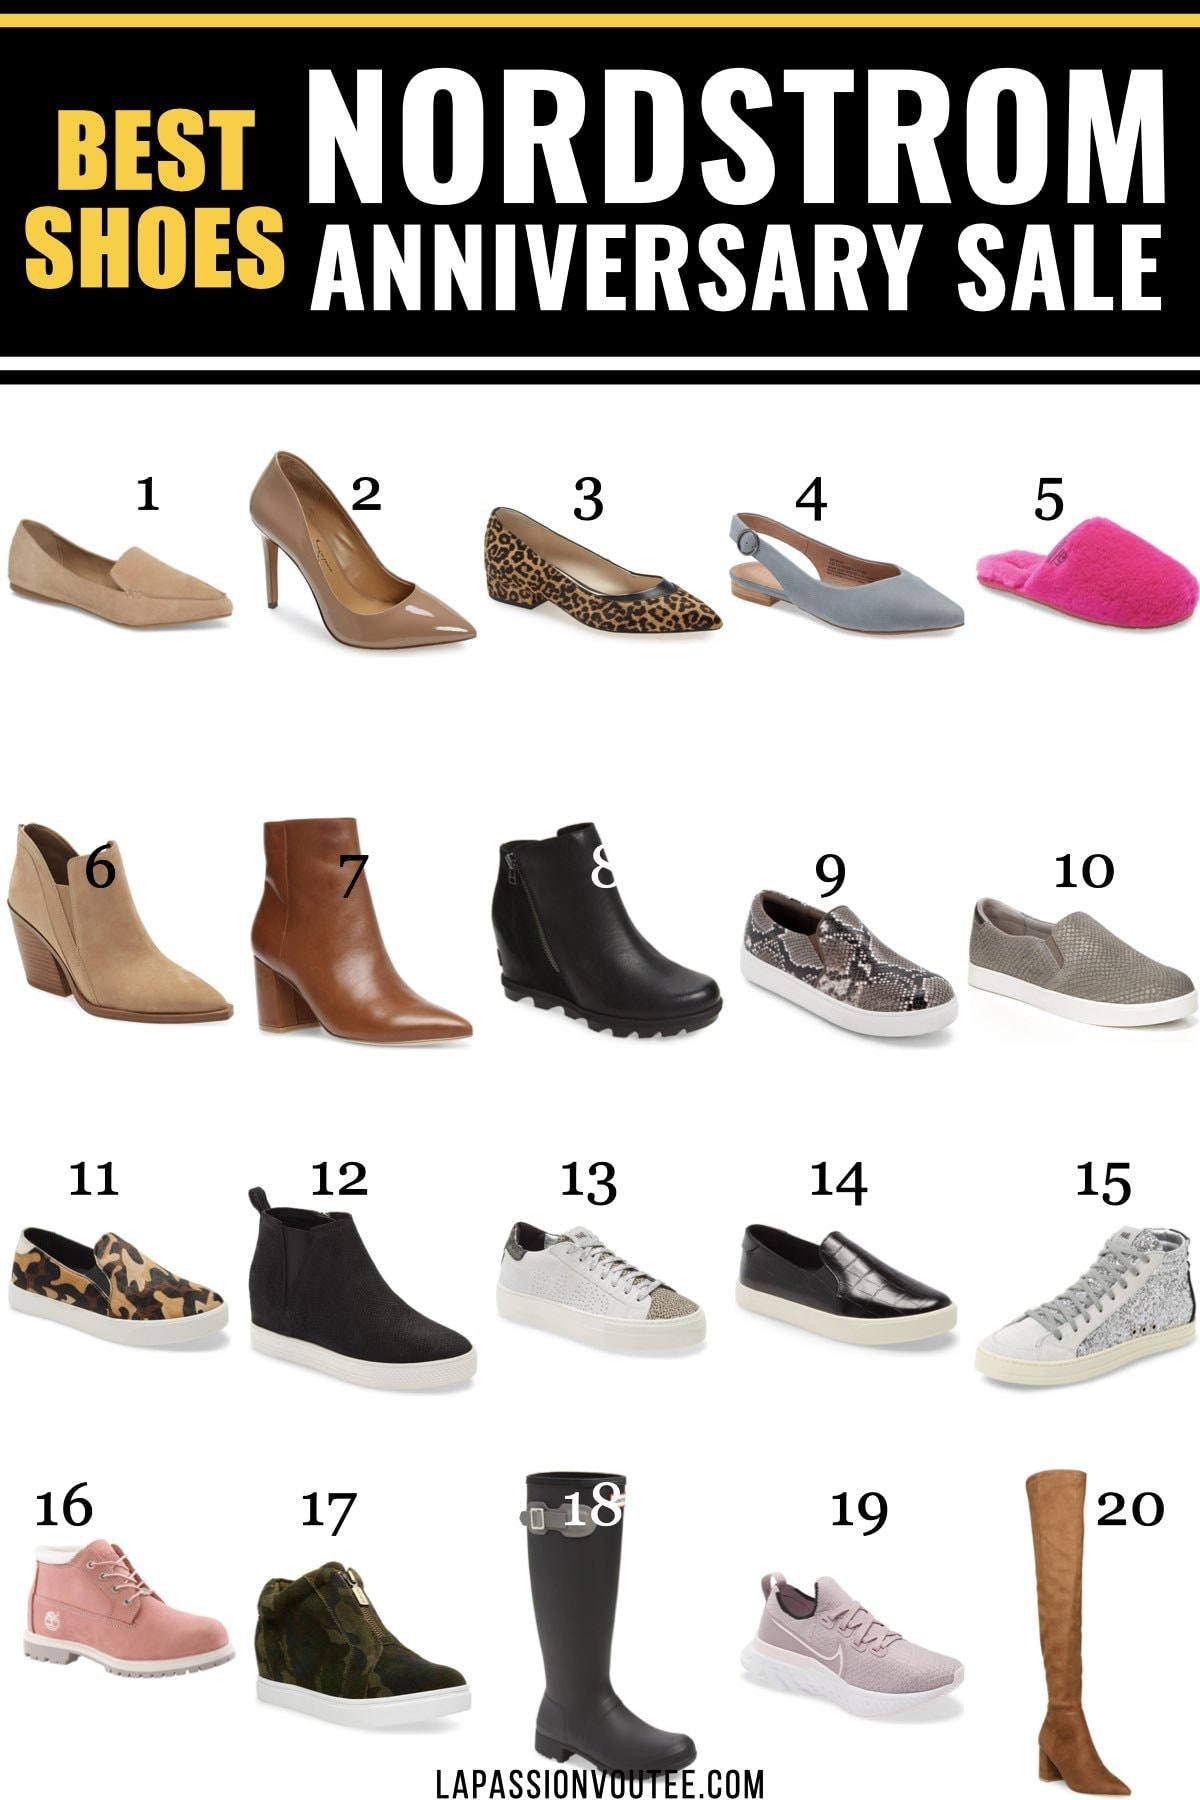 Must-have Nordstrom Anniversary Sale shoes worth getting this year.